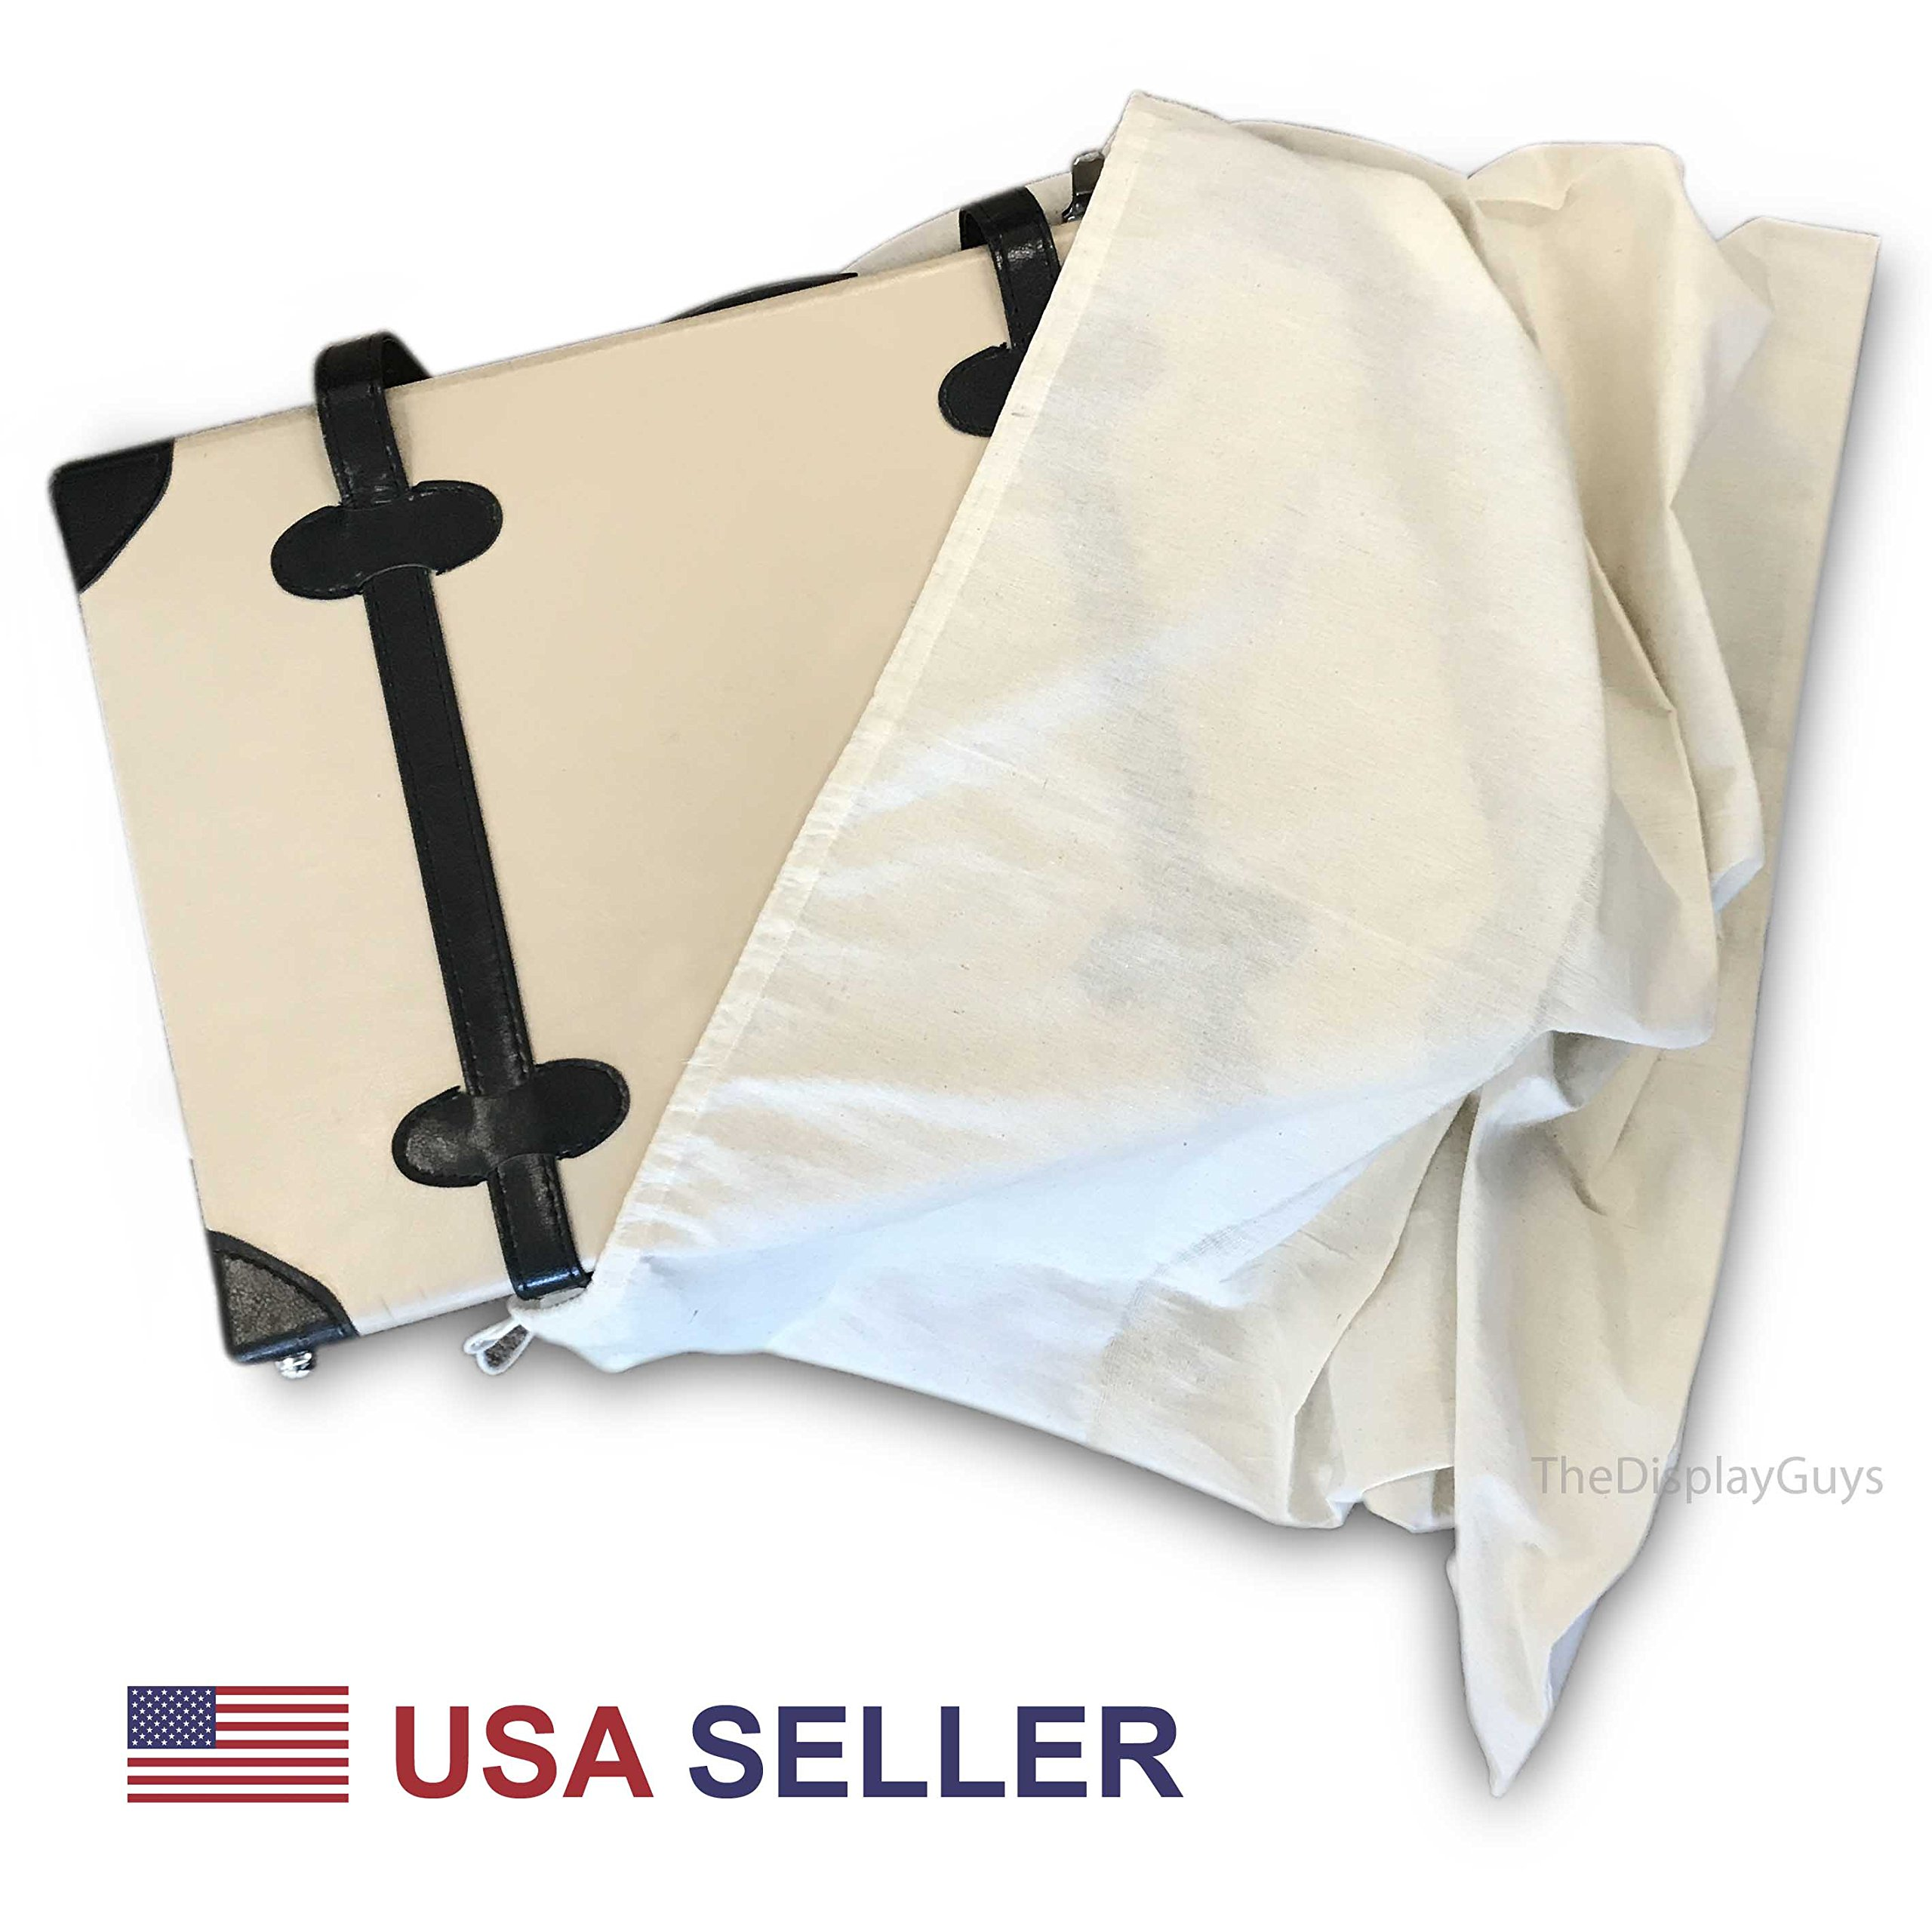 2 Pack 29''x29'' Extra Thick Cotton Muslin Laundry Dust Cover Bags with Drawstring Natural Color